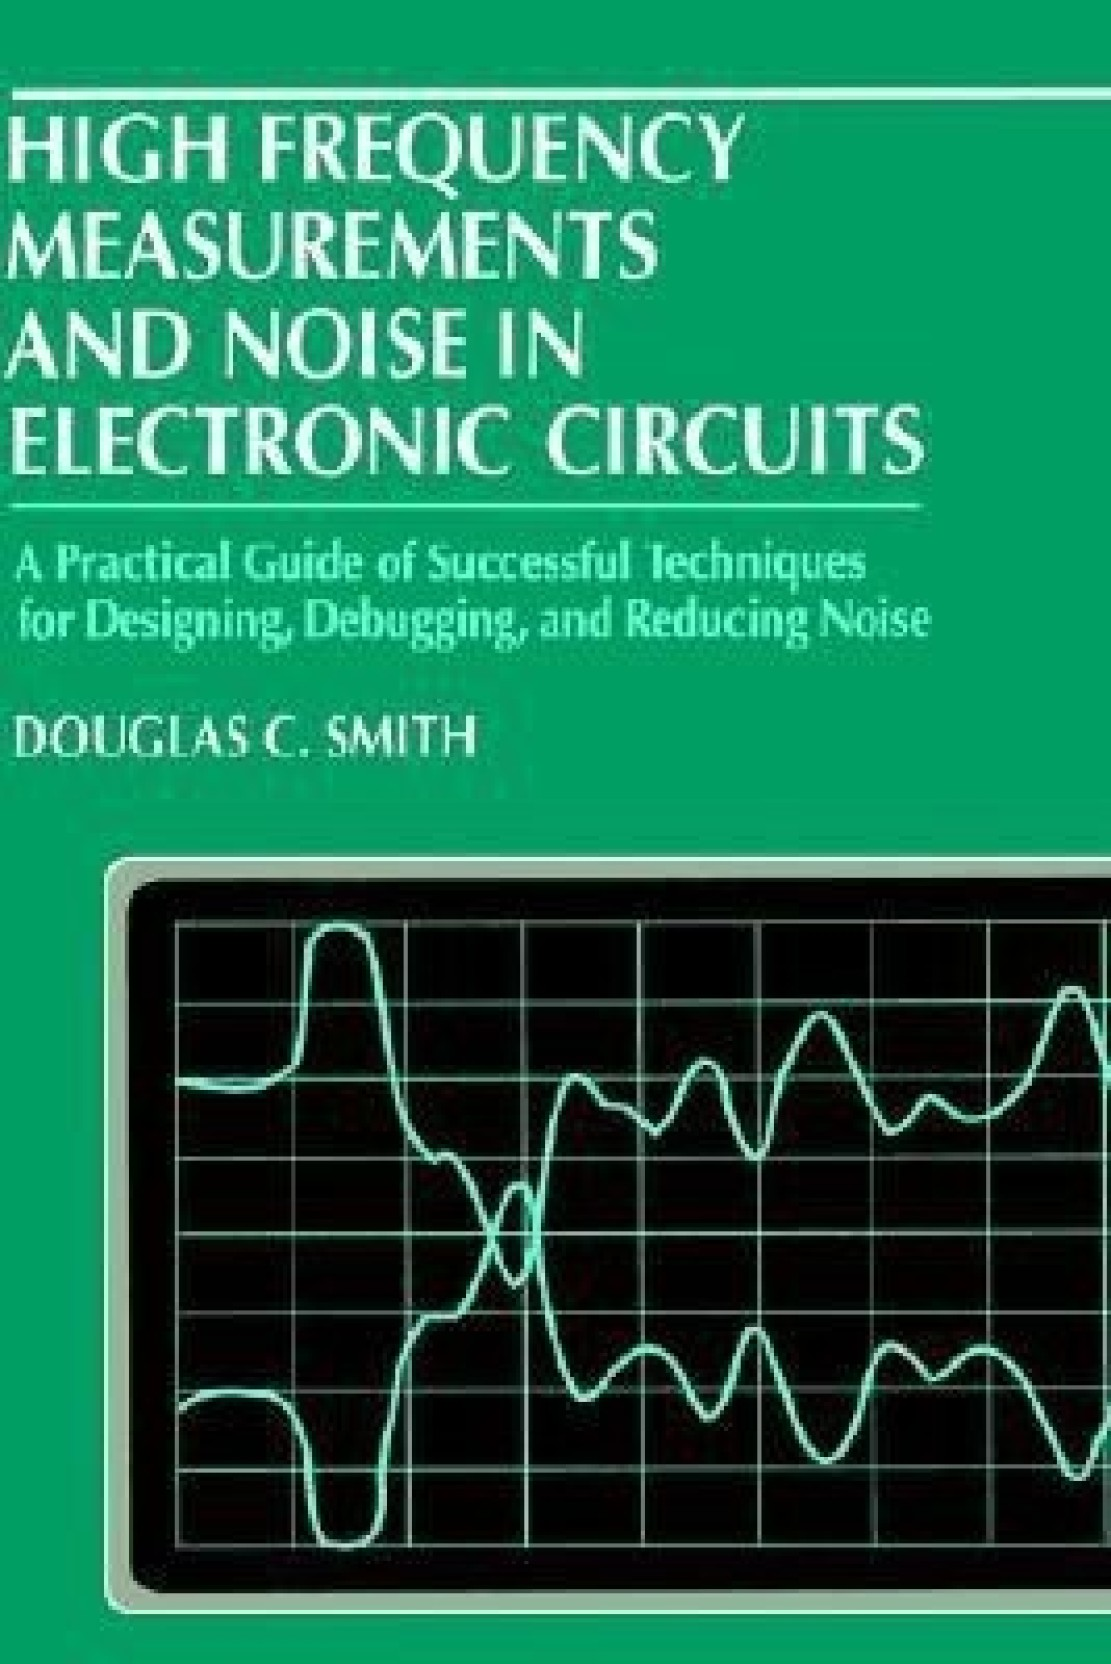 High Frequency Measurements And Noise In Electronic Circuits Buy Designing Add To Cart